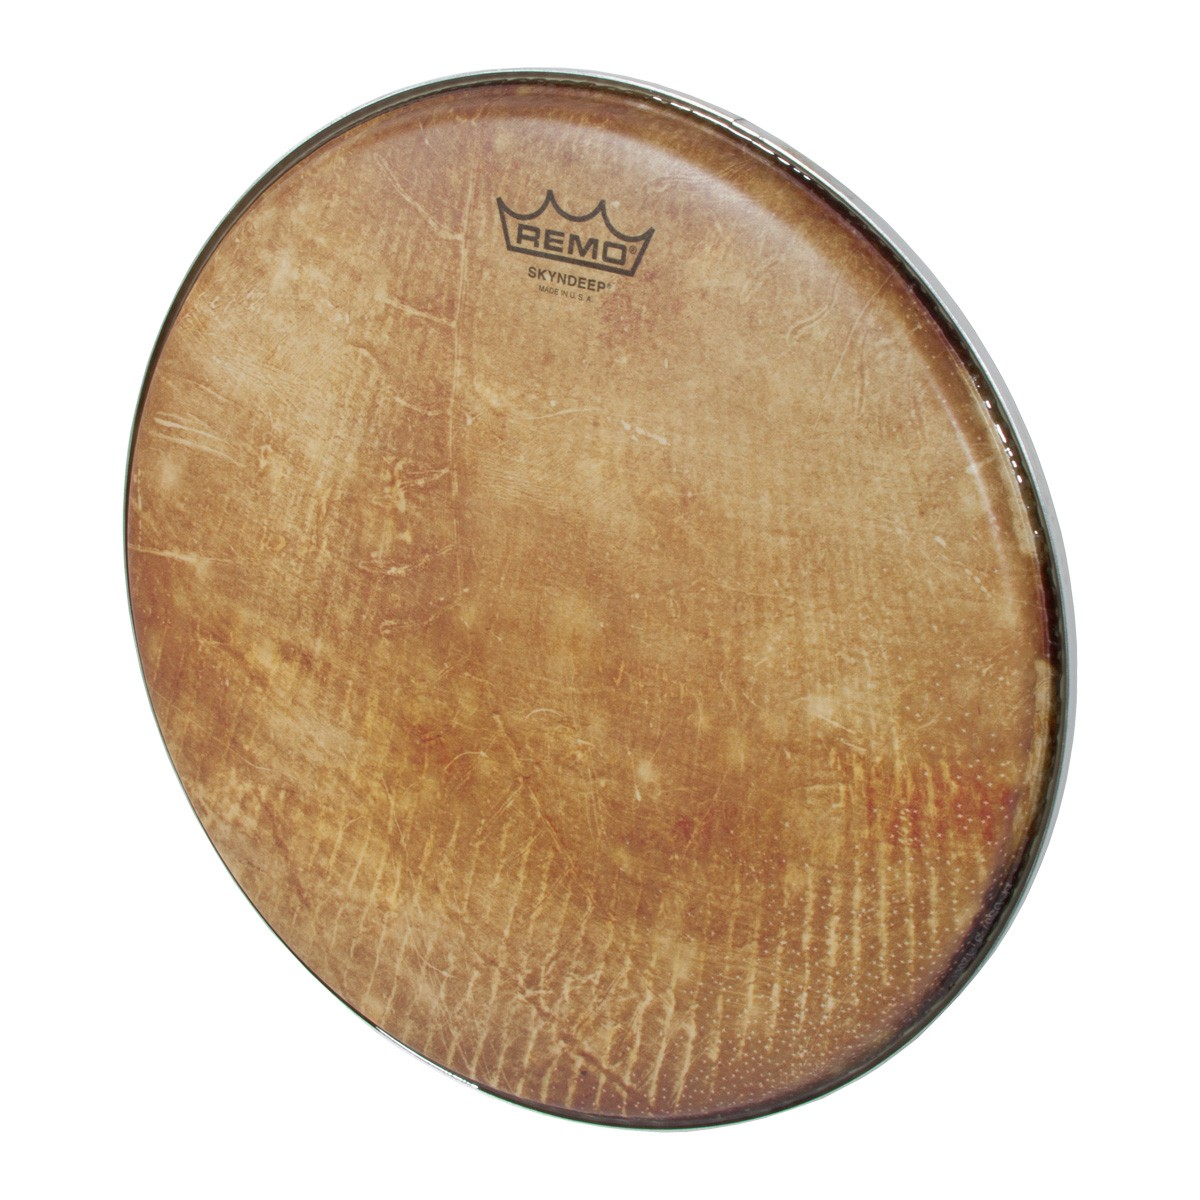 Remo Skyndeep Clear Tone R Series Doumbek Head 12-Inch Diameter 3/8-Inch Collar - Fish Skin Graphic